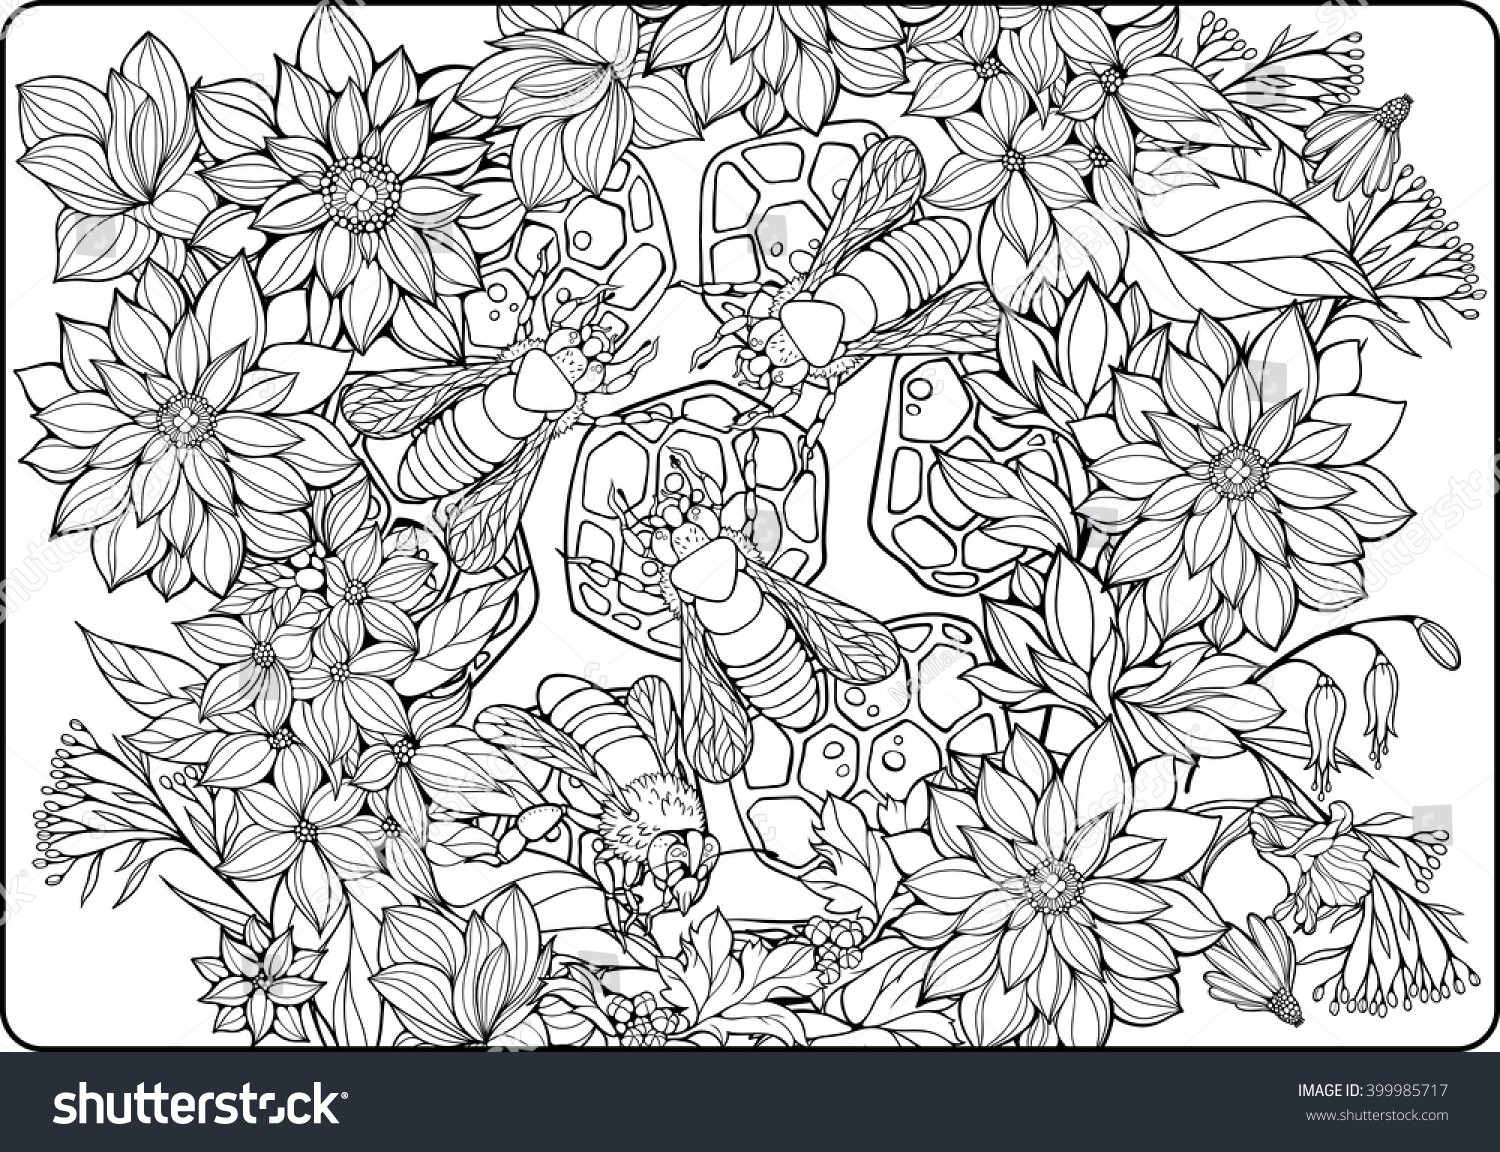 coloring page flowers bees collecting honey stock vector 399985717